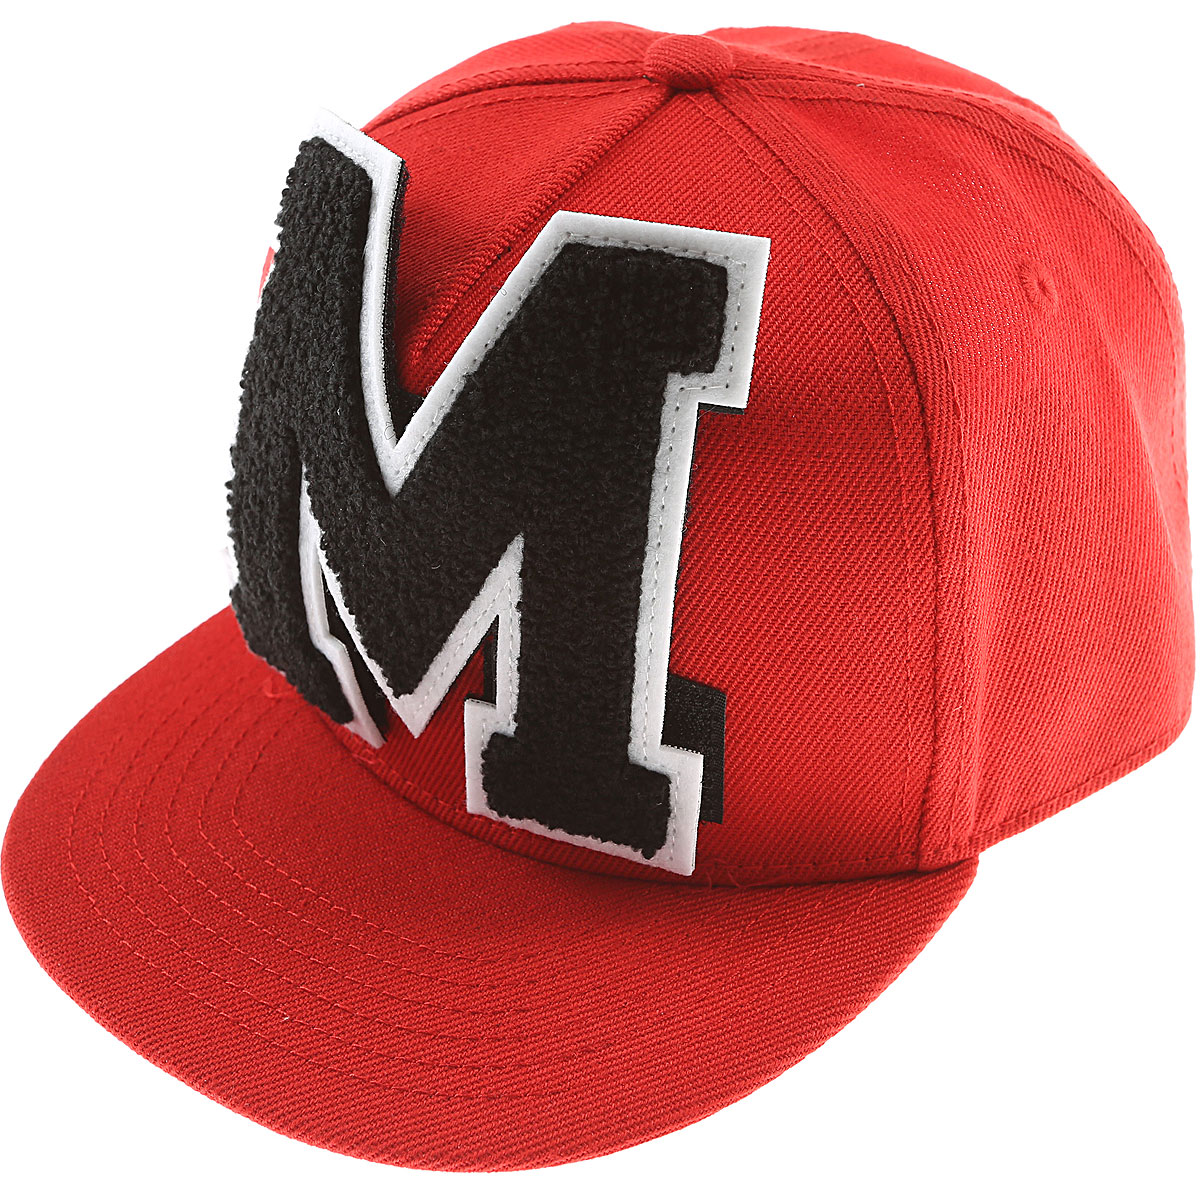 Image of MSGM Kids Hats for Boys, Red, polyester, 2017